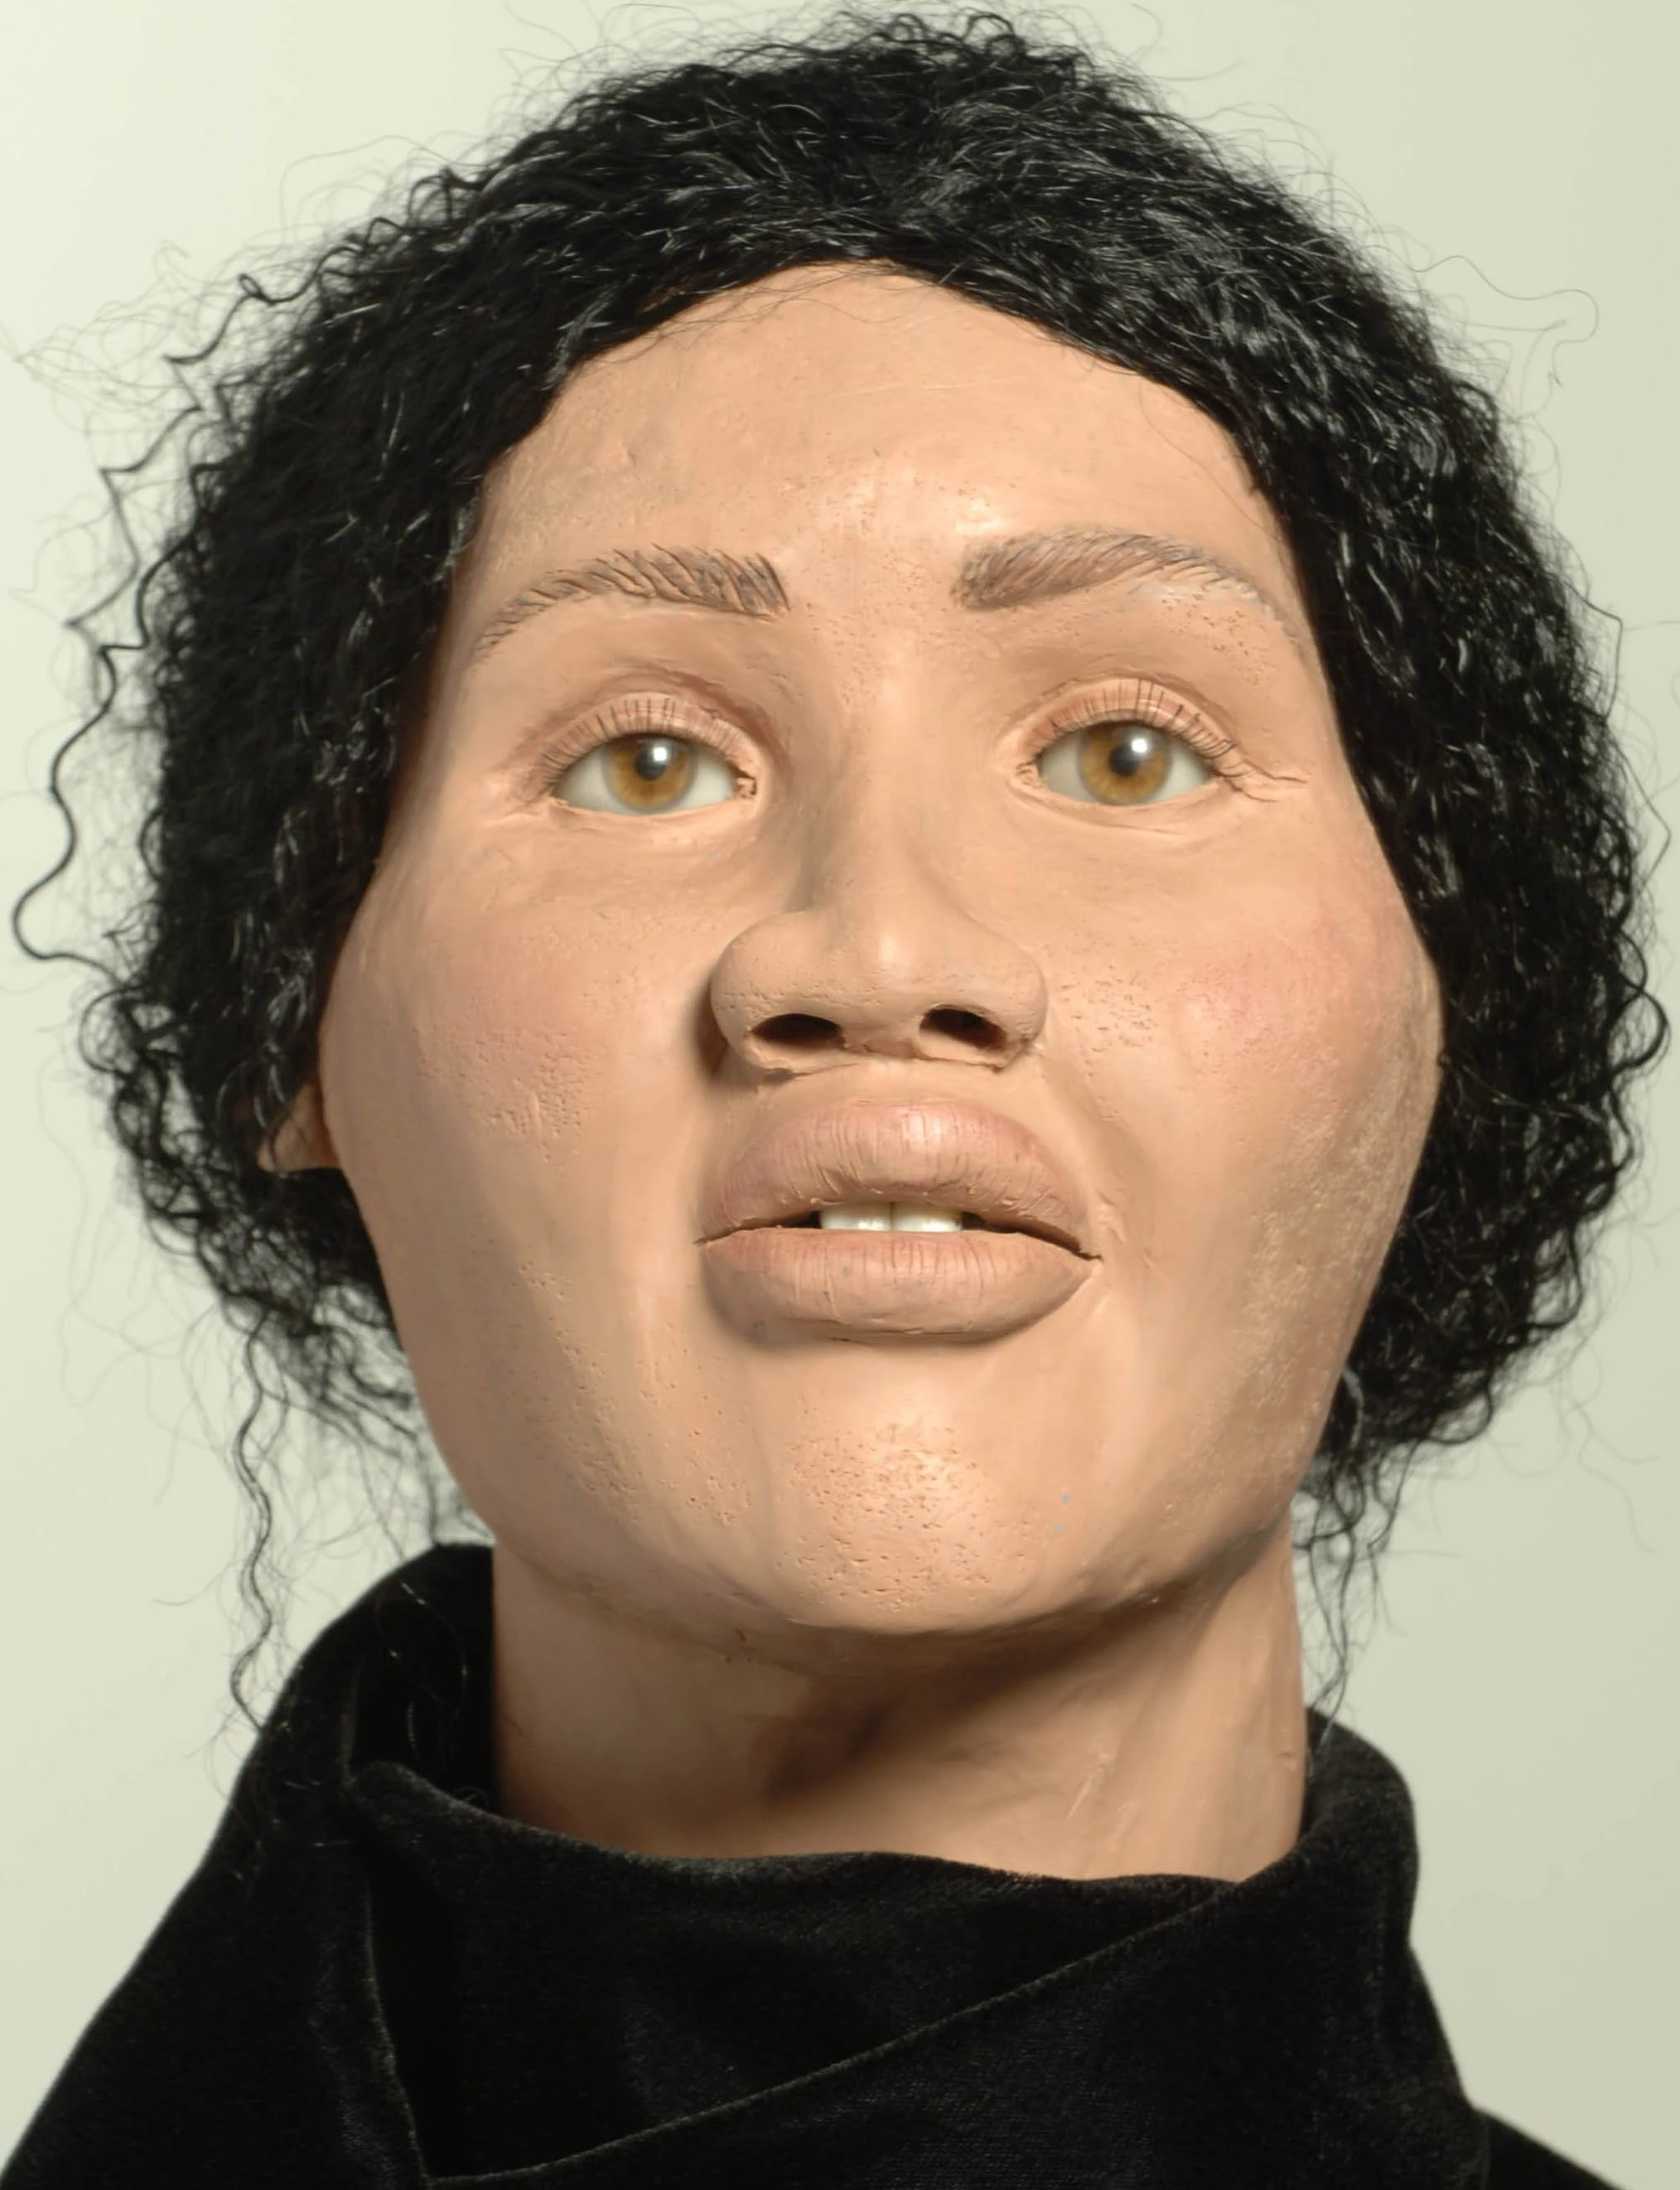 Kent County Jane Doe (July 31, 1997)